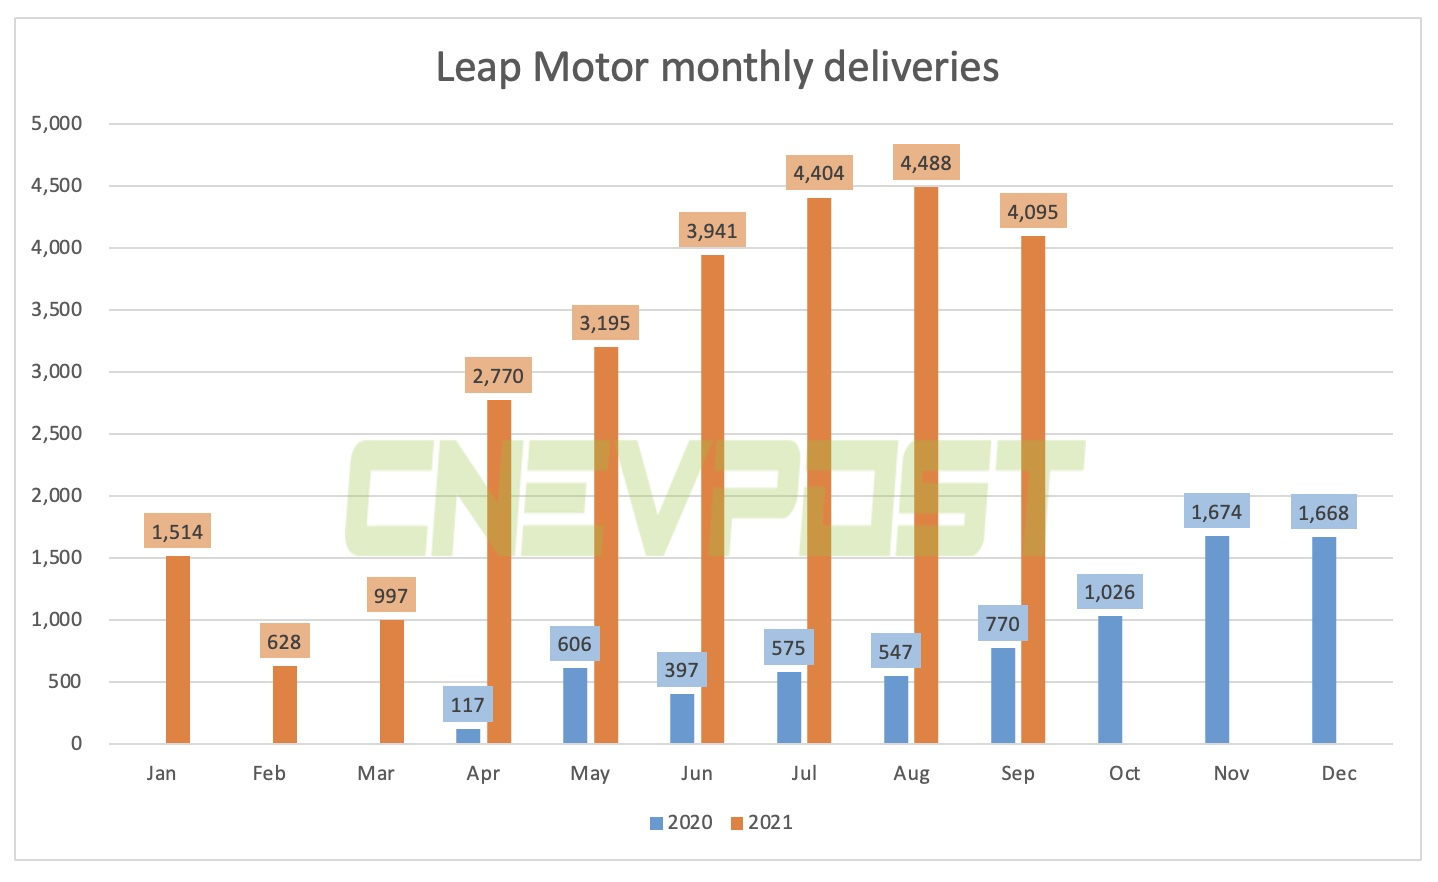 Leap Motor delivered 4,095 vehicles in Sept, up 432% from a year earlier-CnEVPost